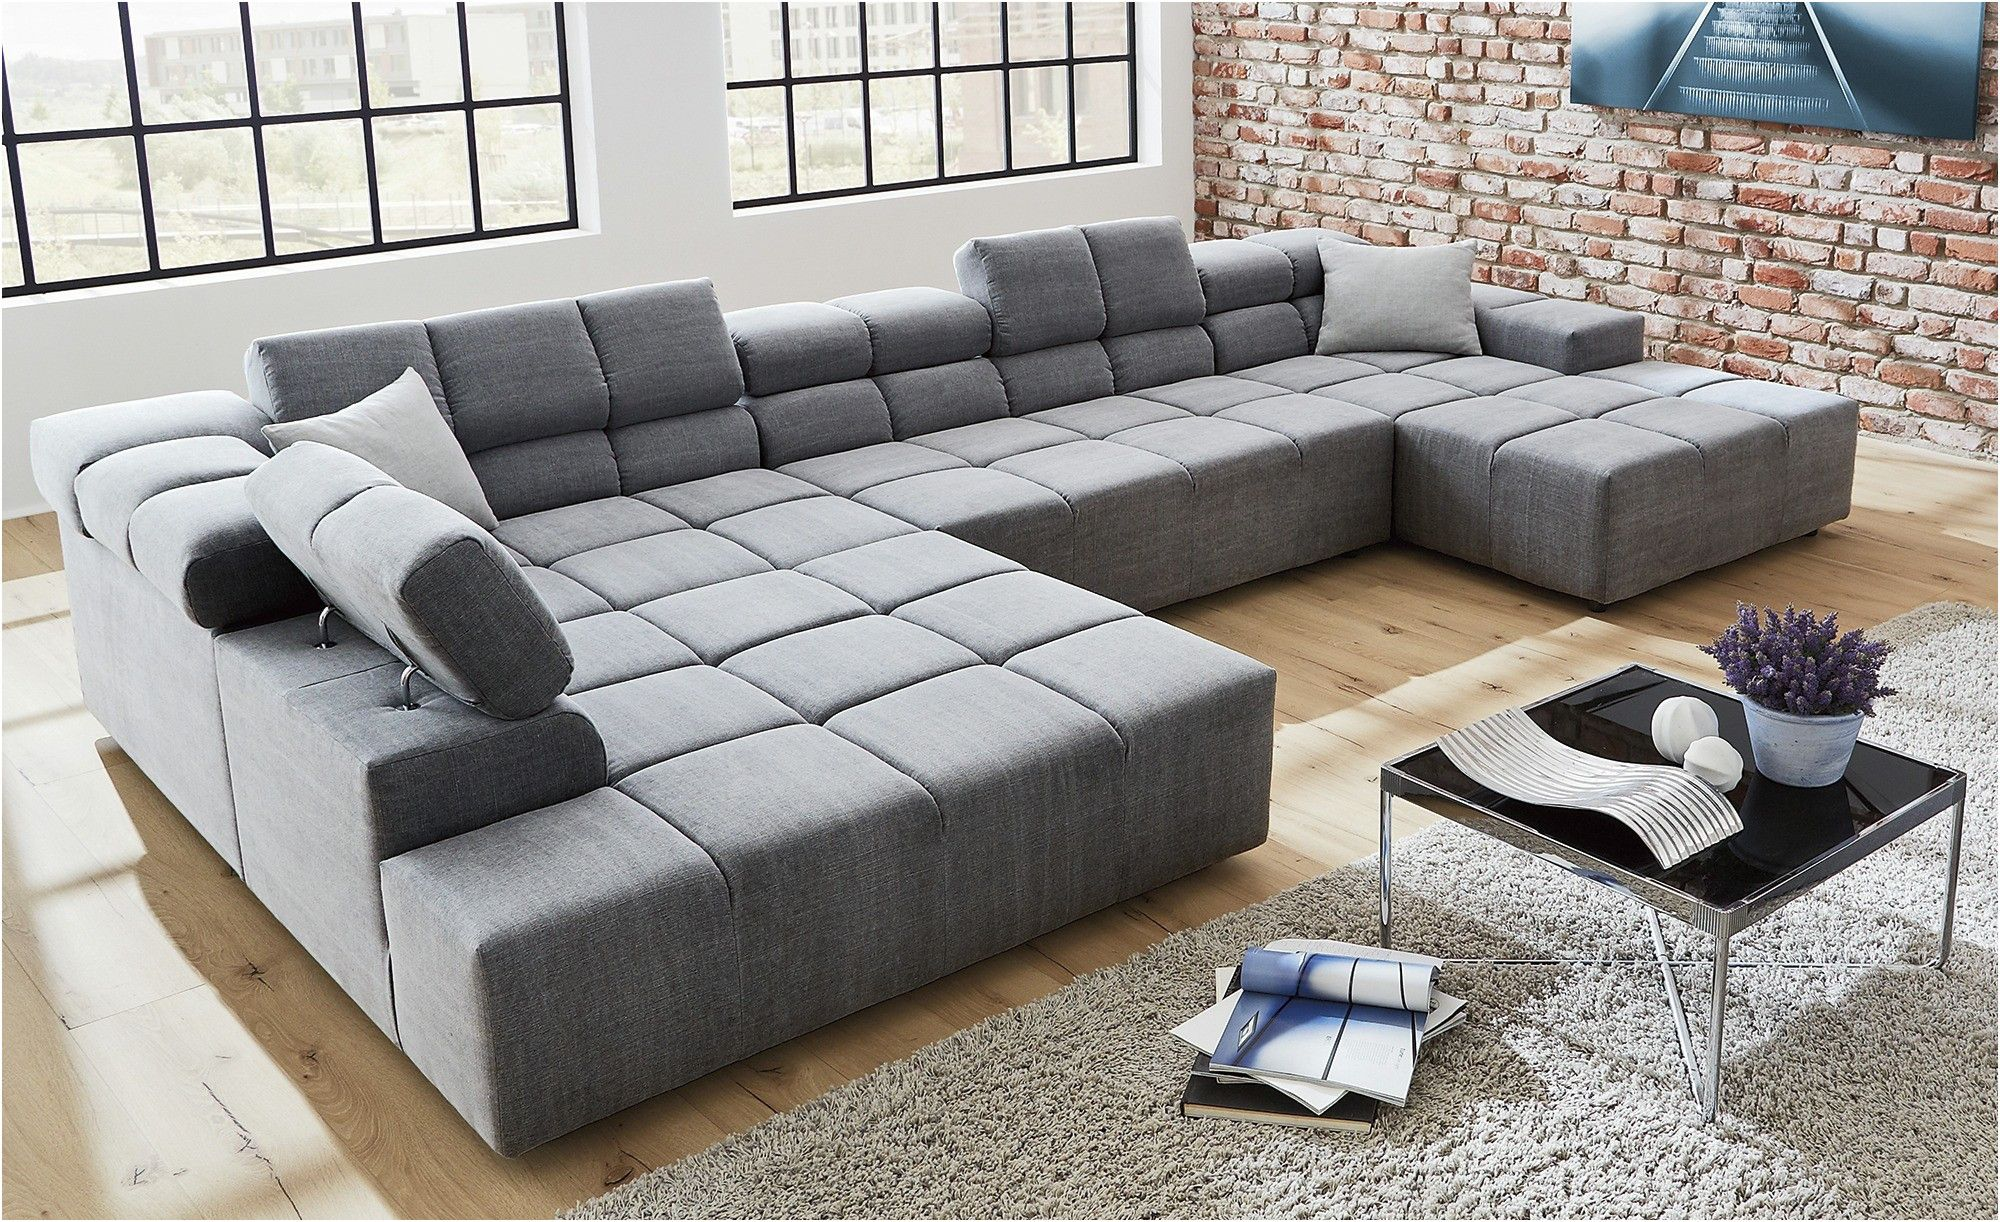 Perfect Wohnlandschaft L Modern Bedroom Furniture Furniture Design Sofa Design